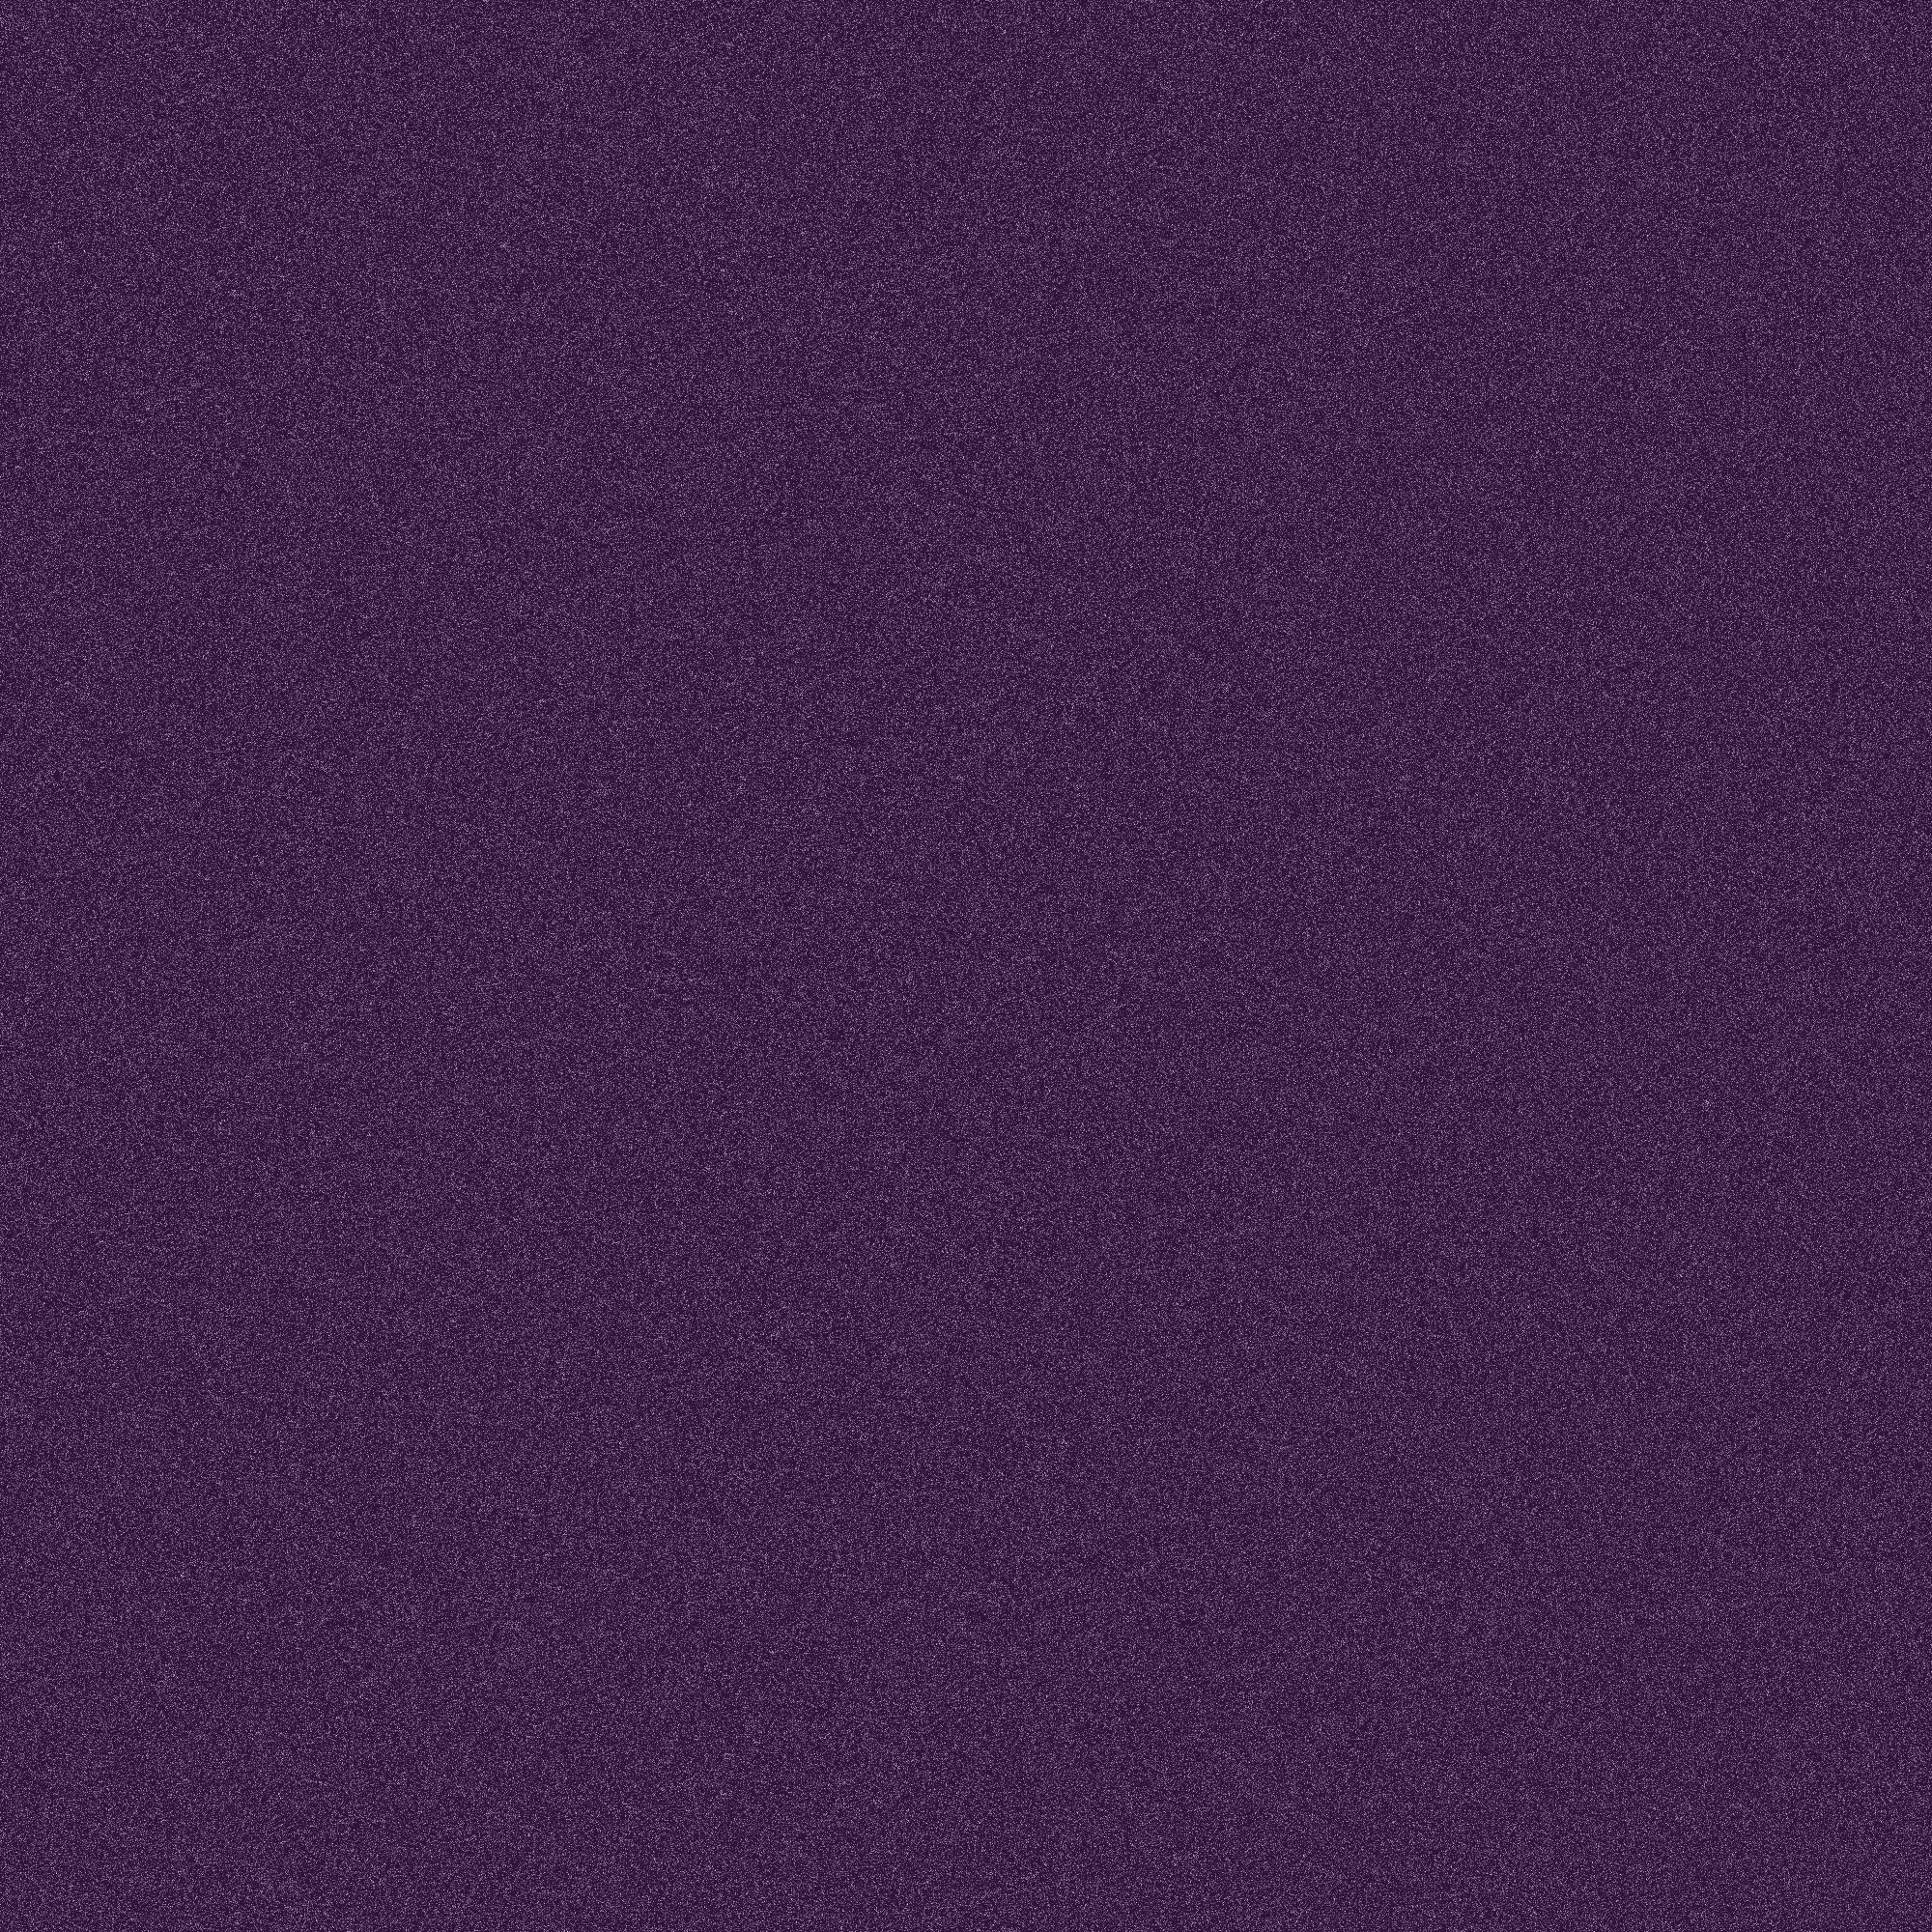 noize_background_purple